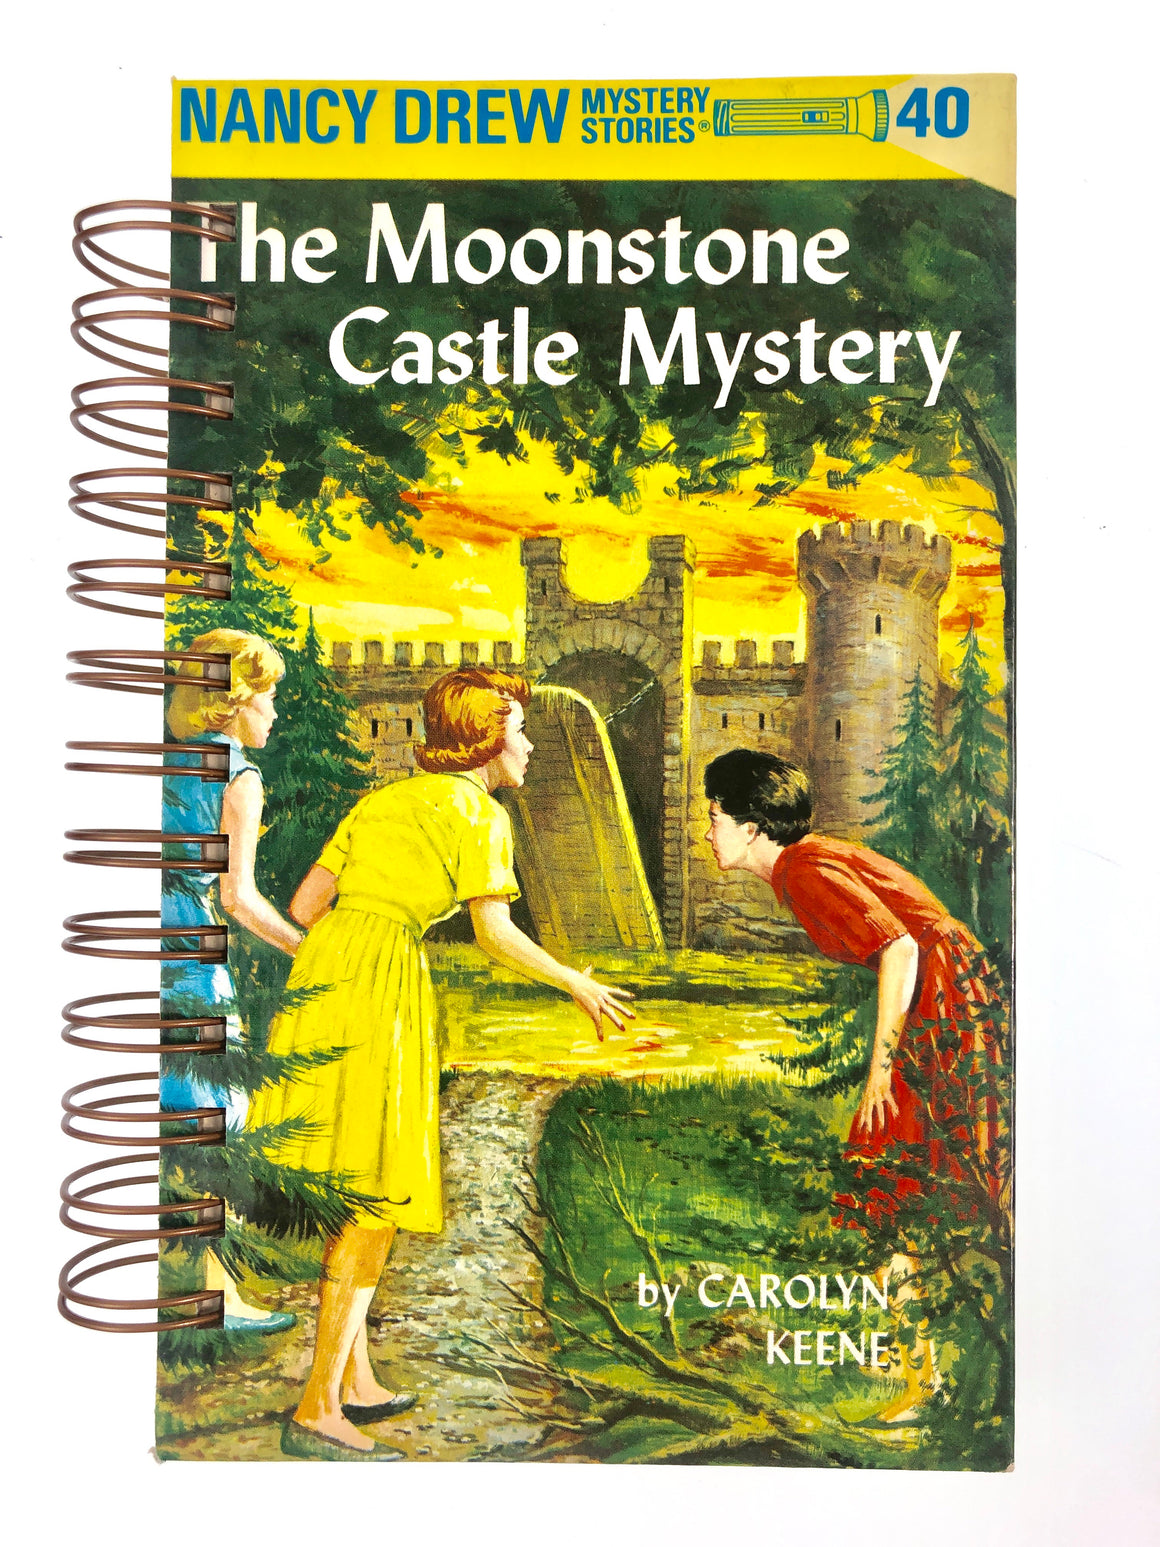 Nancy Drew #40 - The Moonstone Castle Mystery-Red Barn Collections